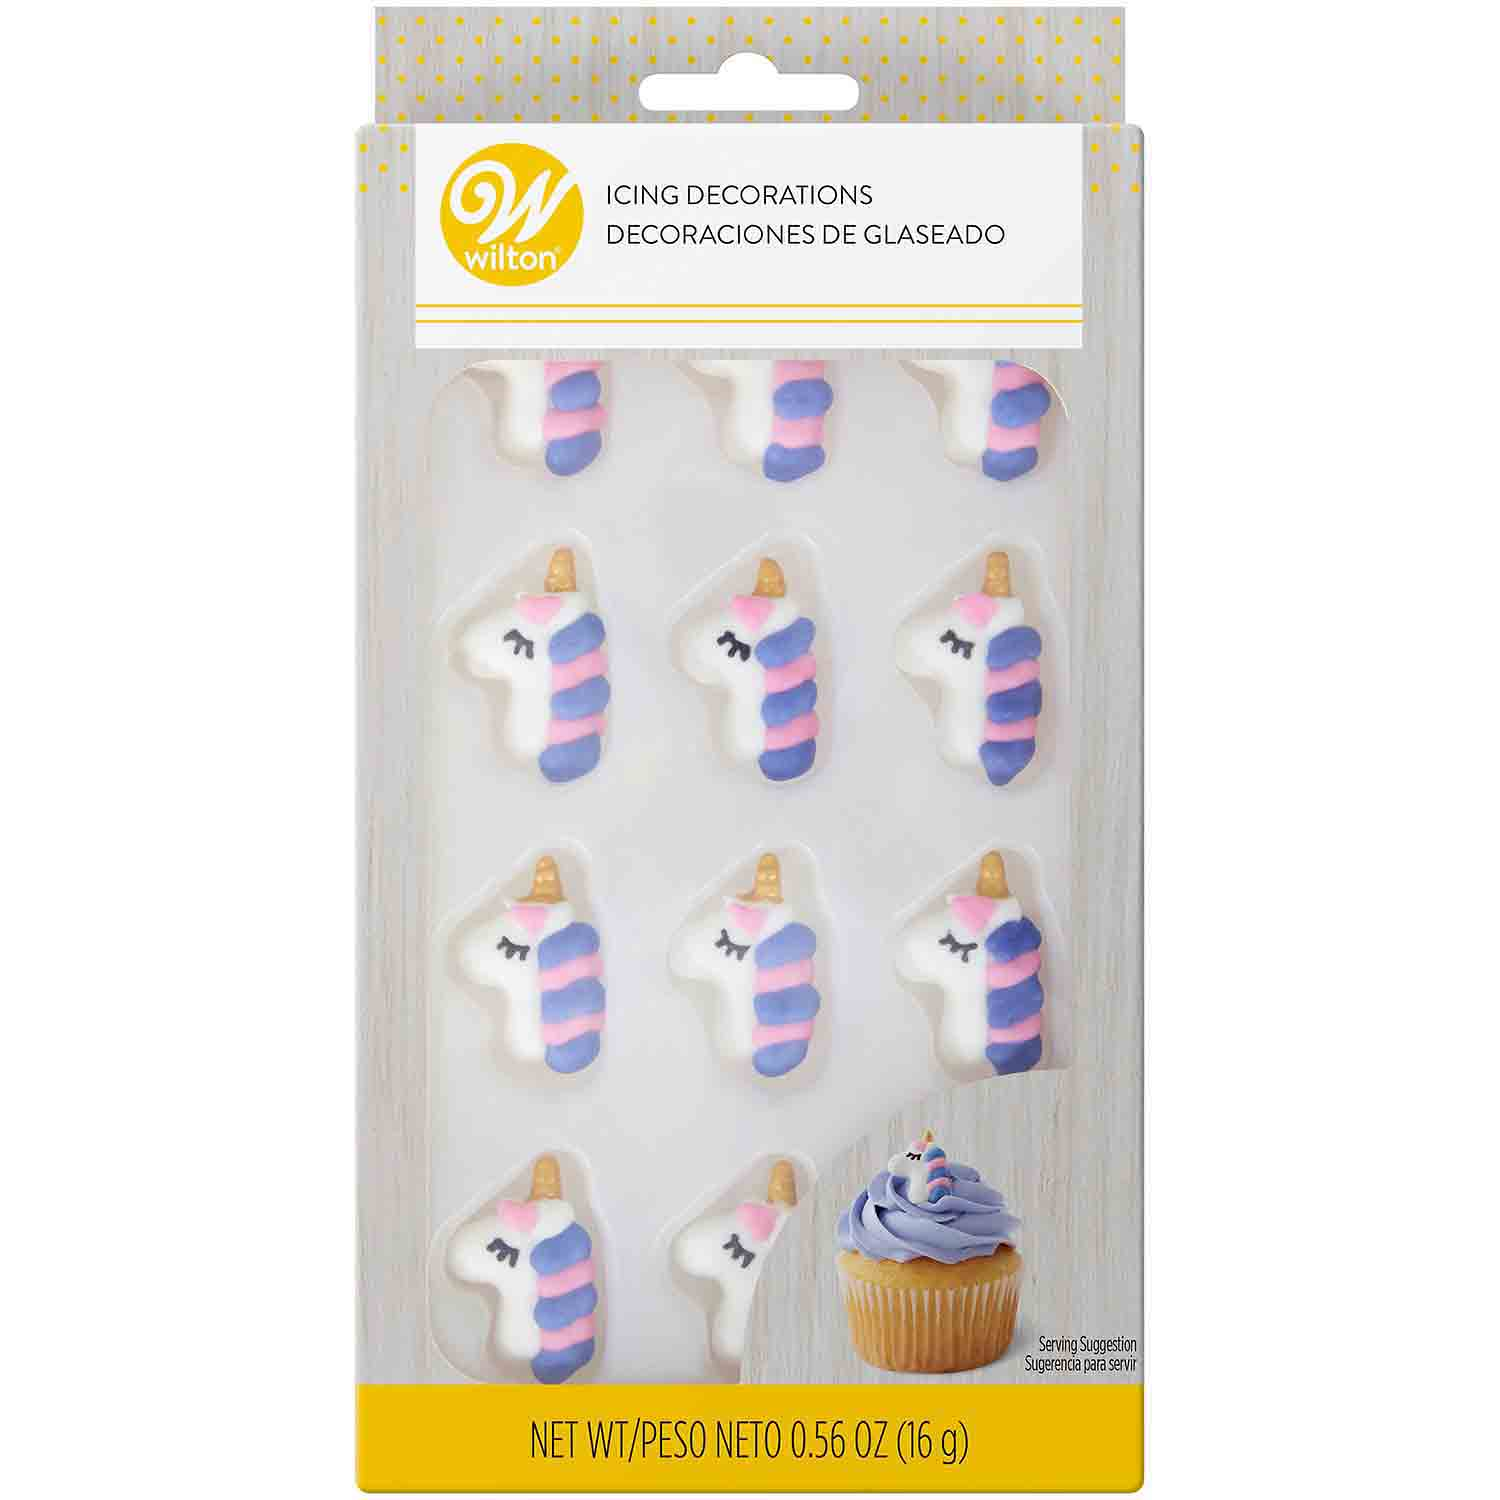 Unicorn Royal Icing Decorations